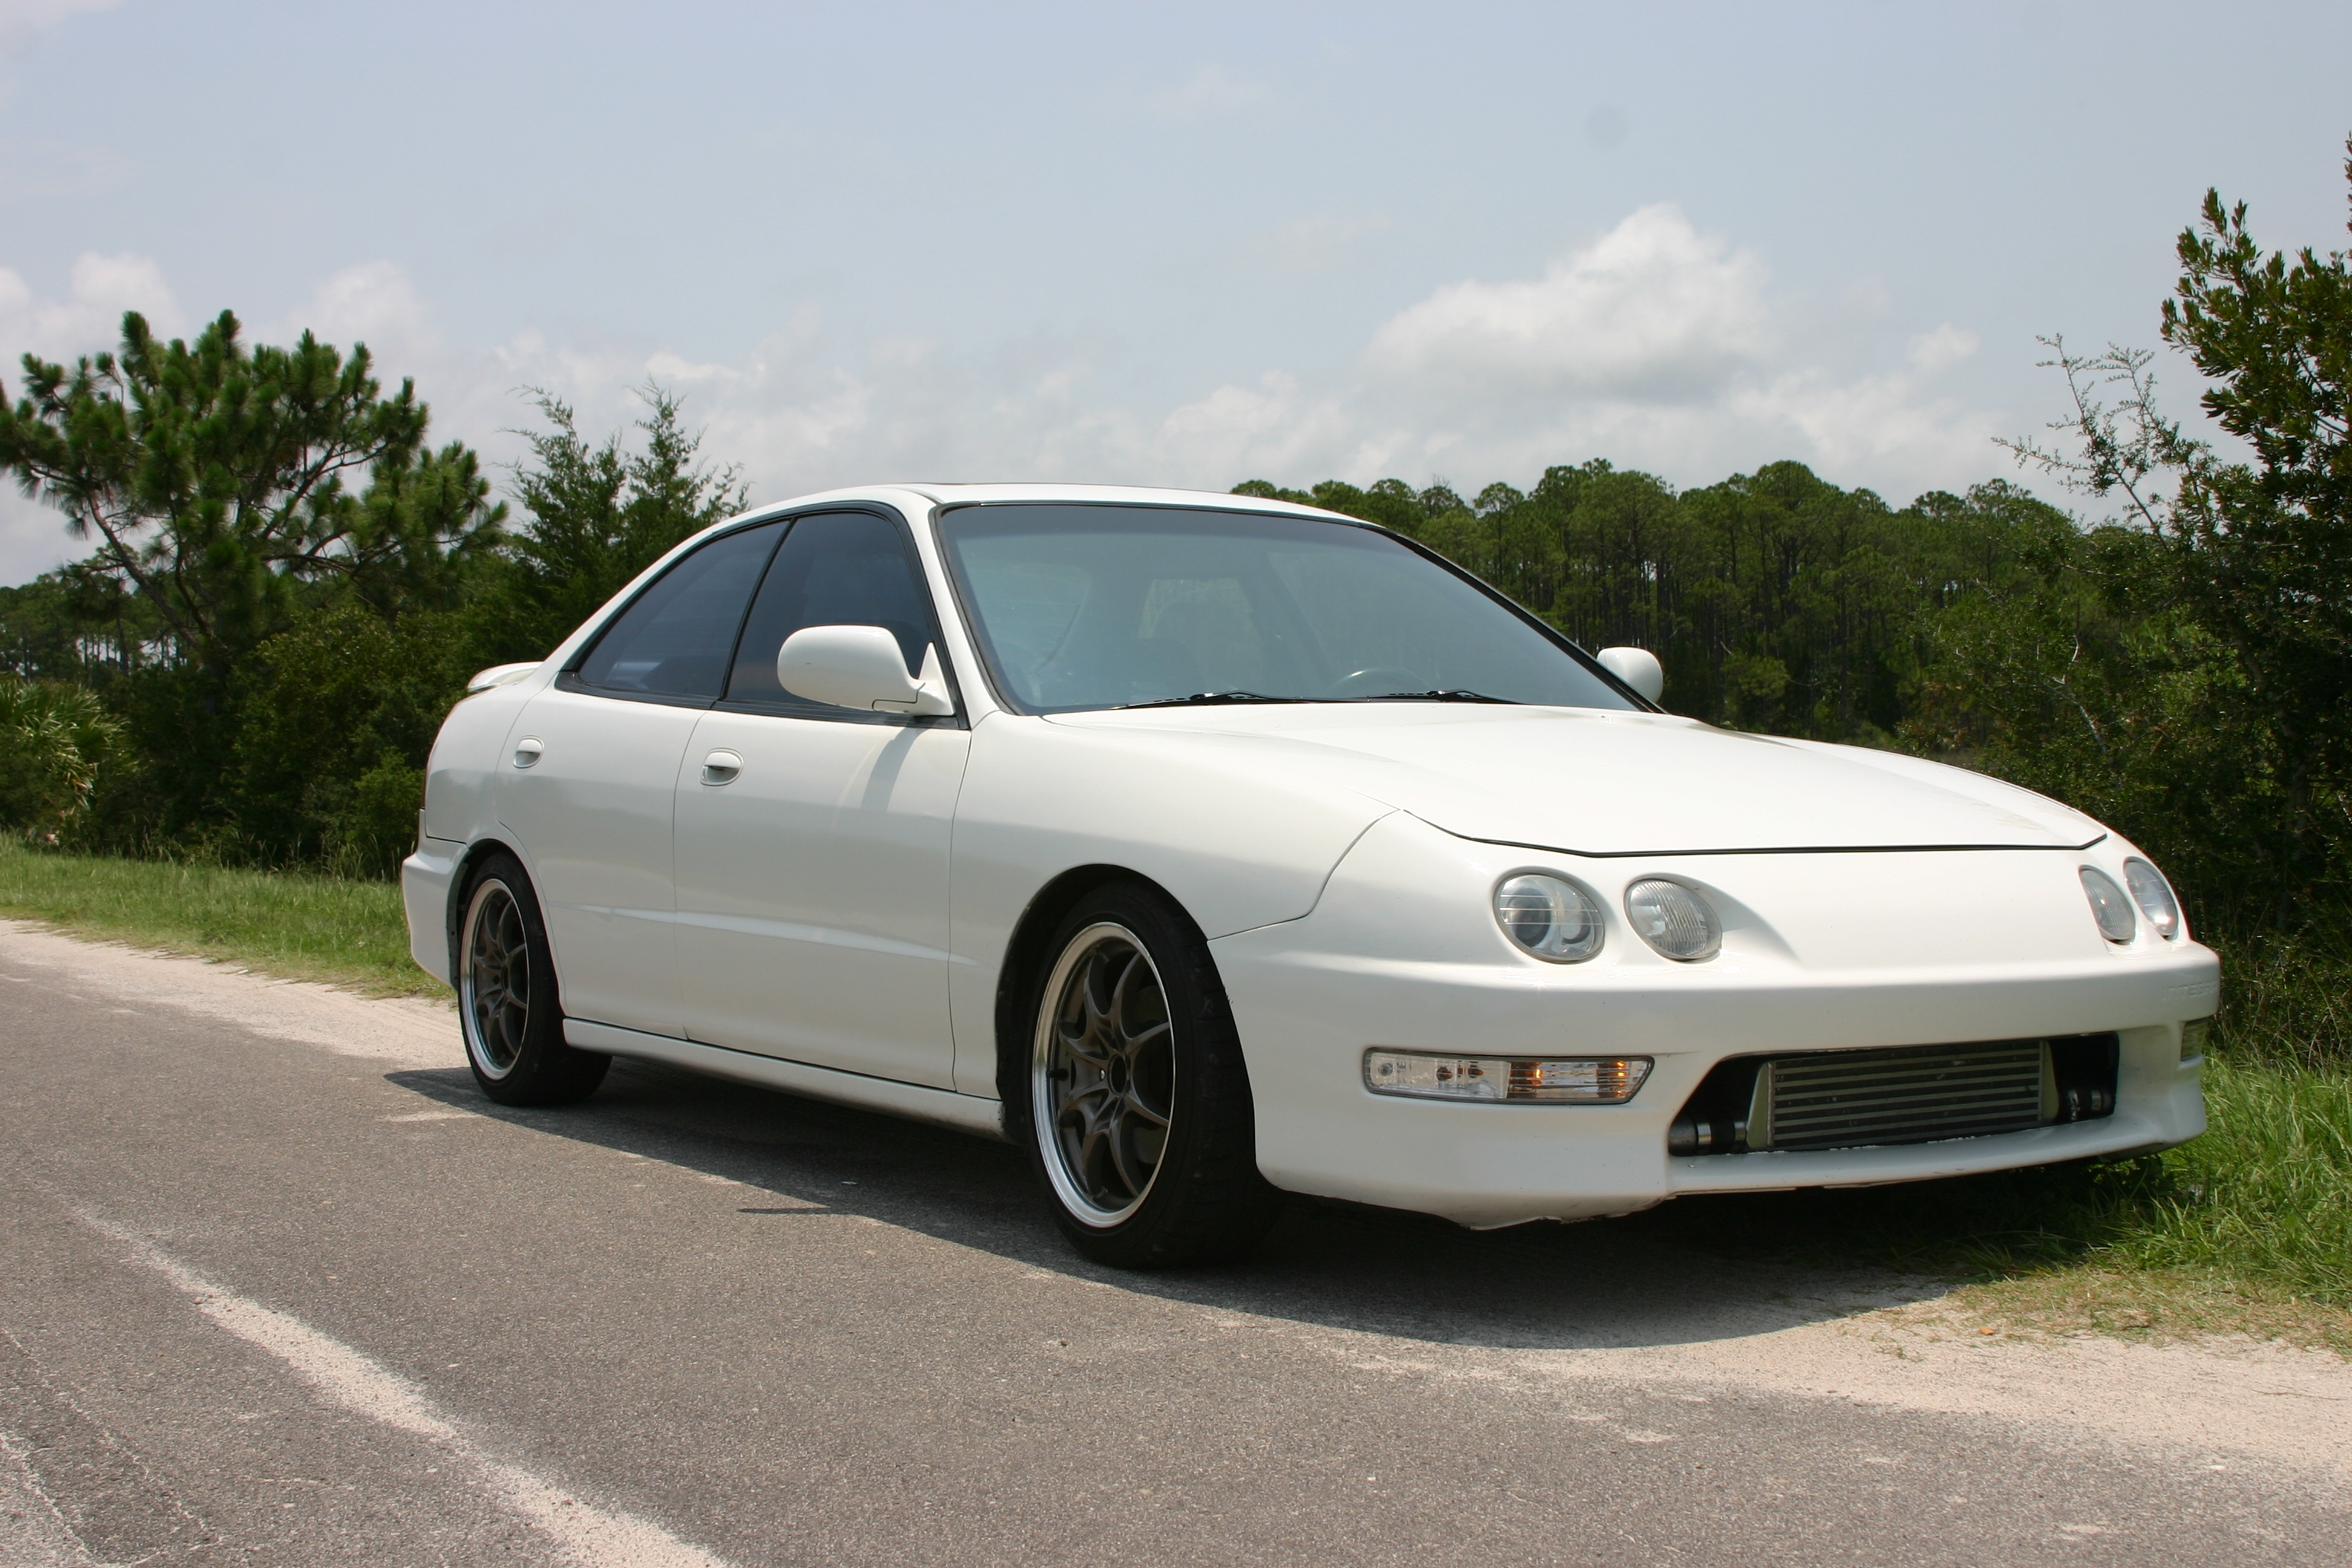 mac_24_seven 1994 Acura Integra